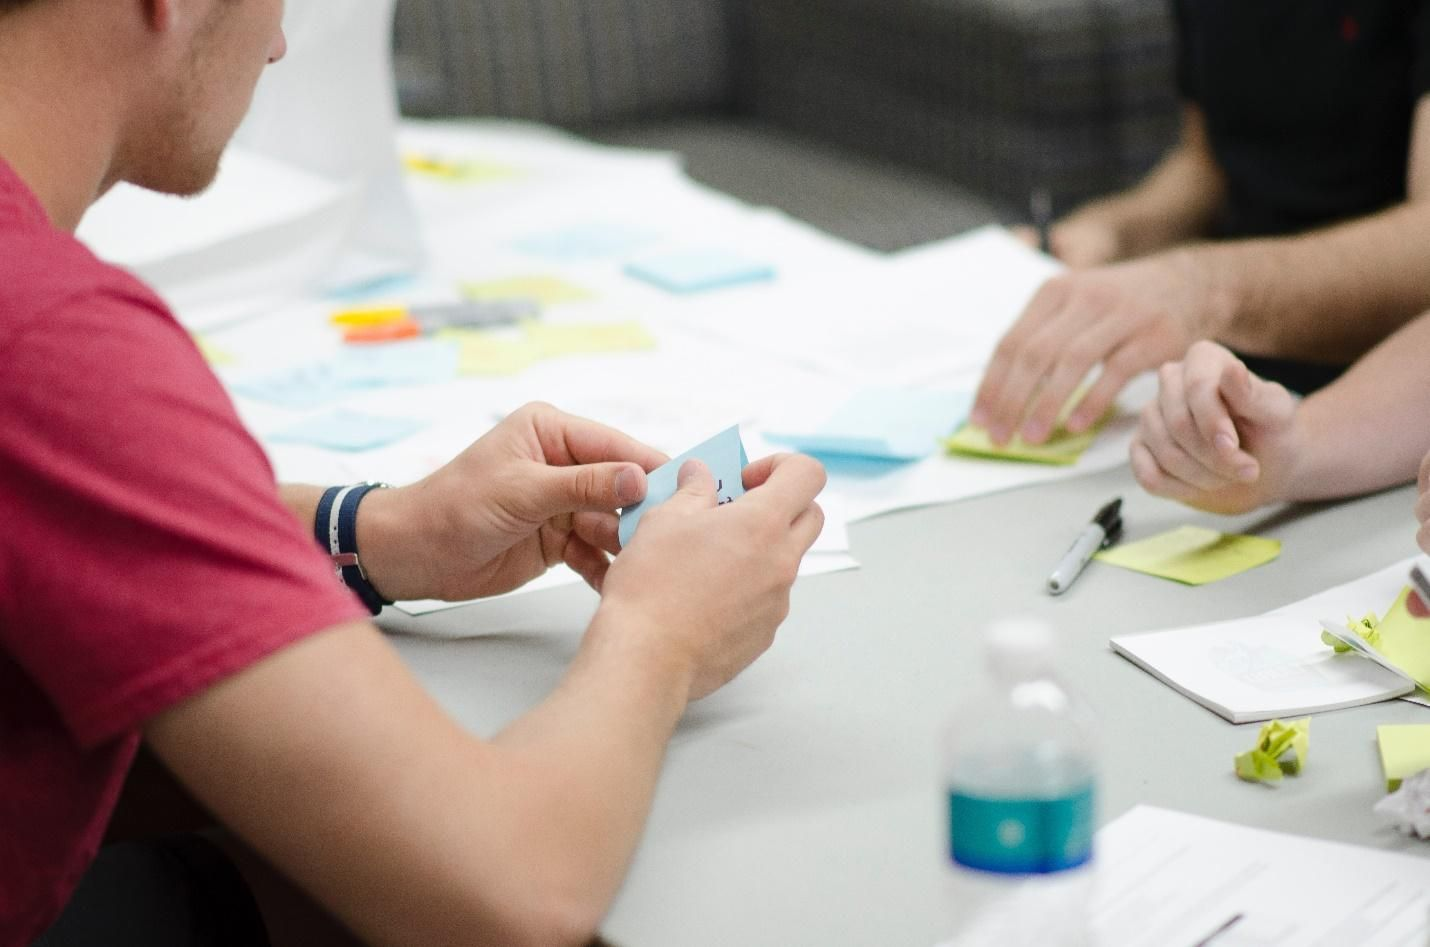 DevOps planning with sticky notes